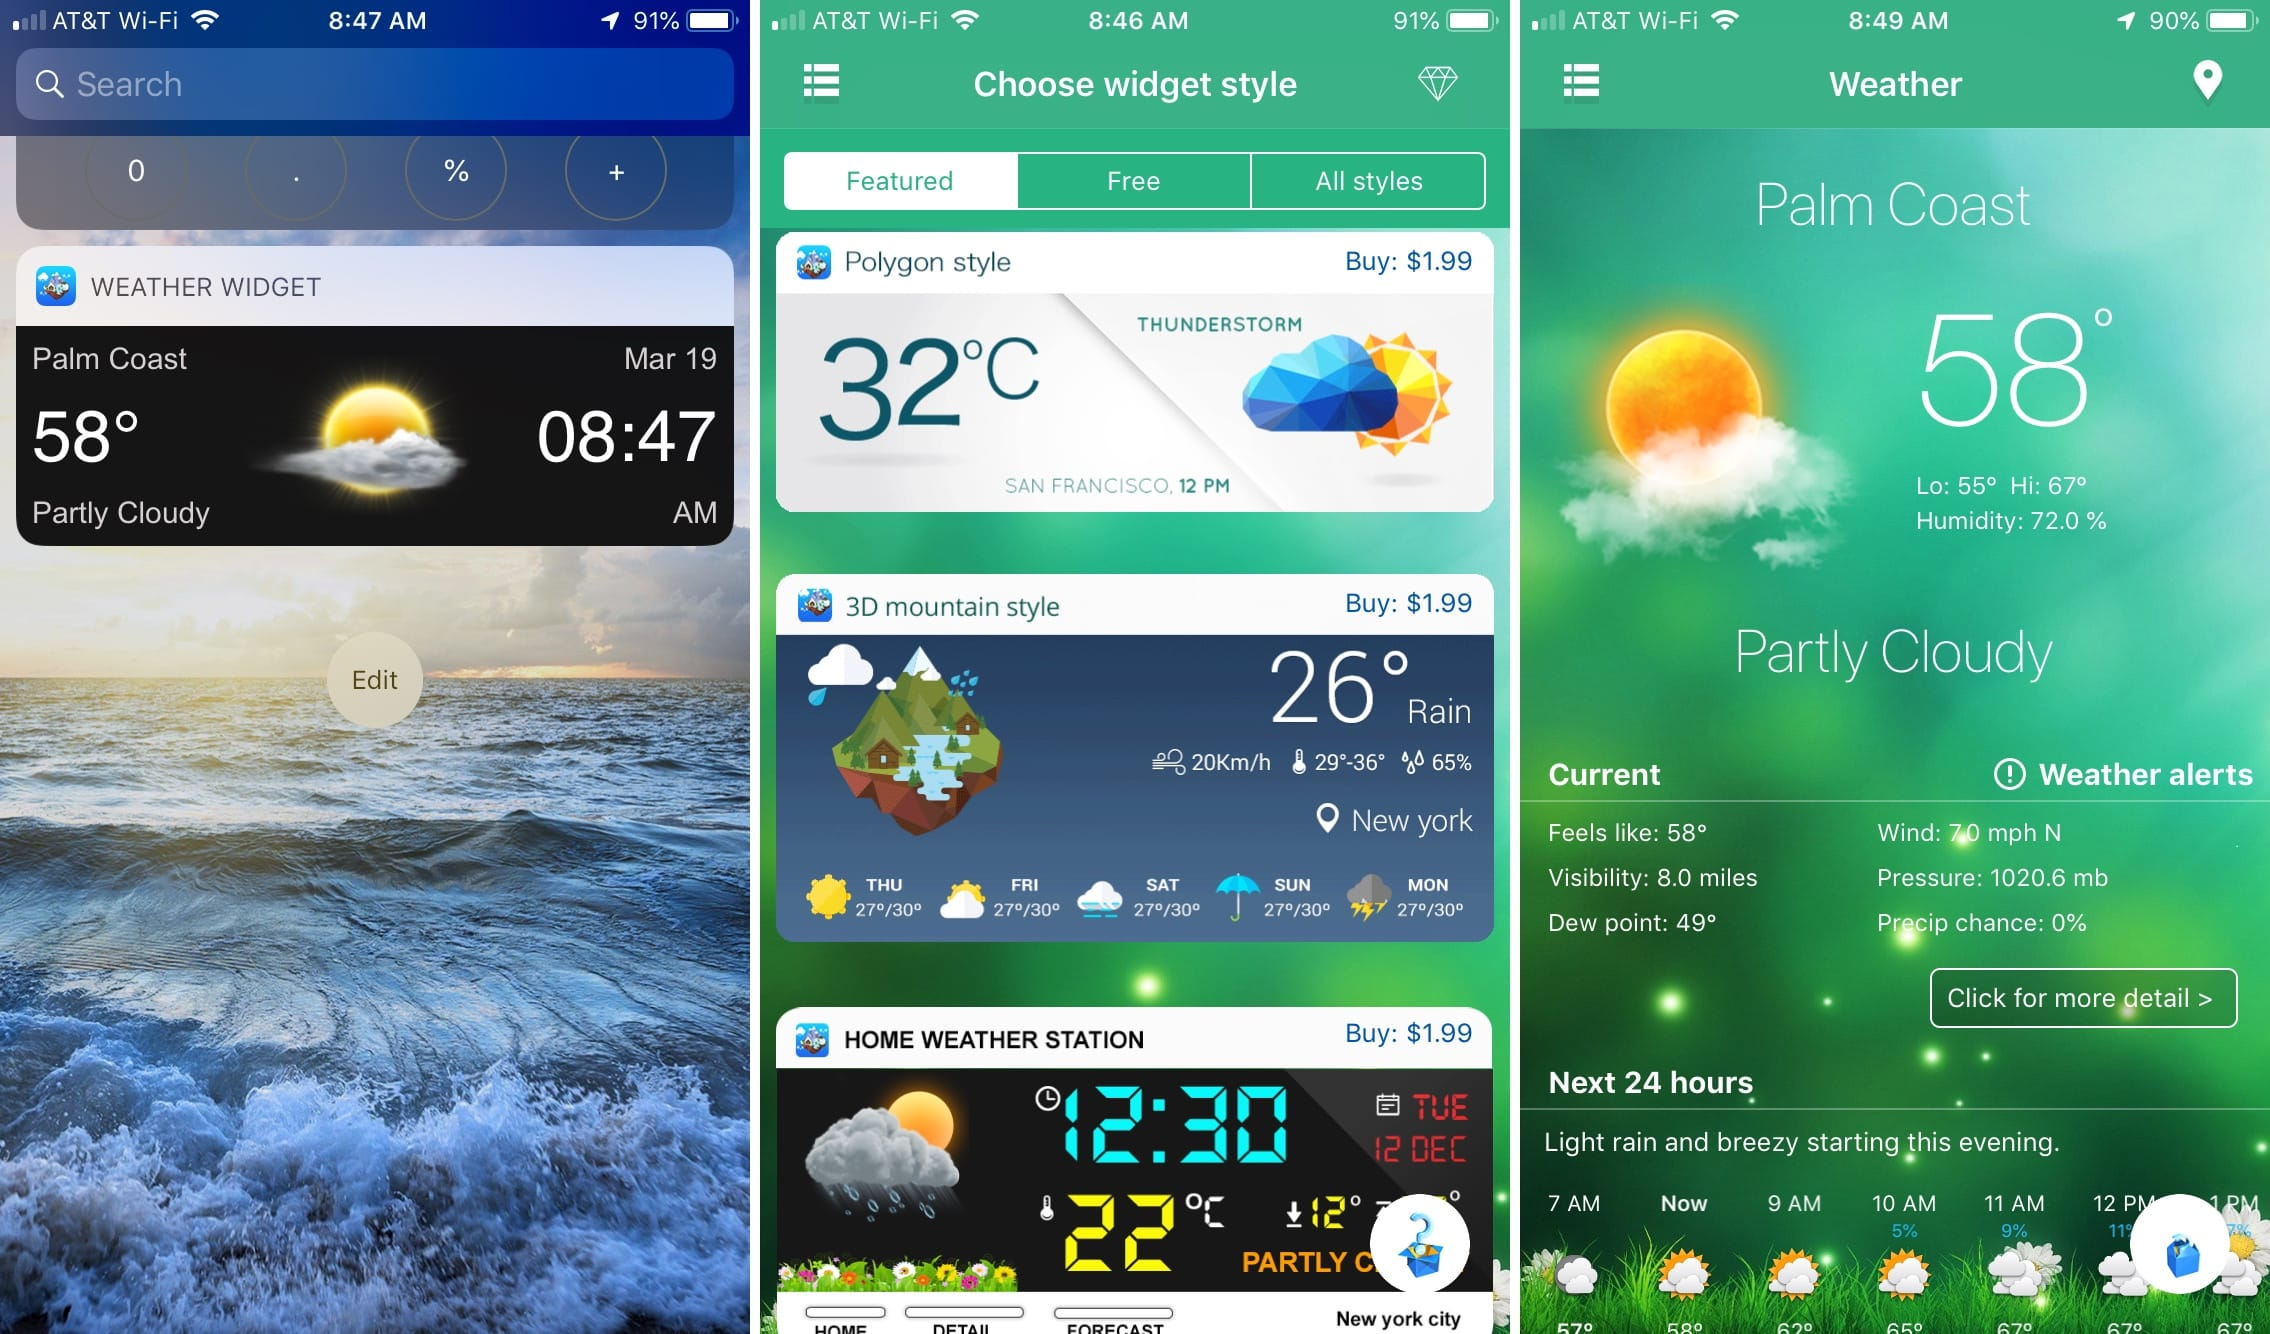 Weather Widget on iPhone